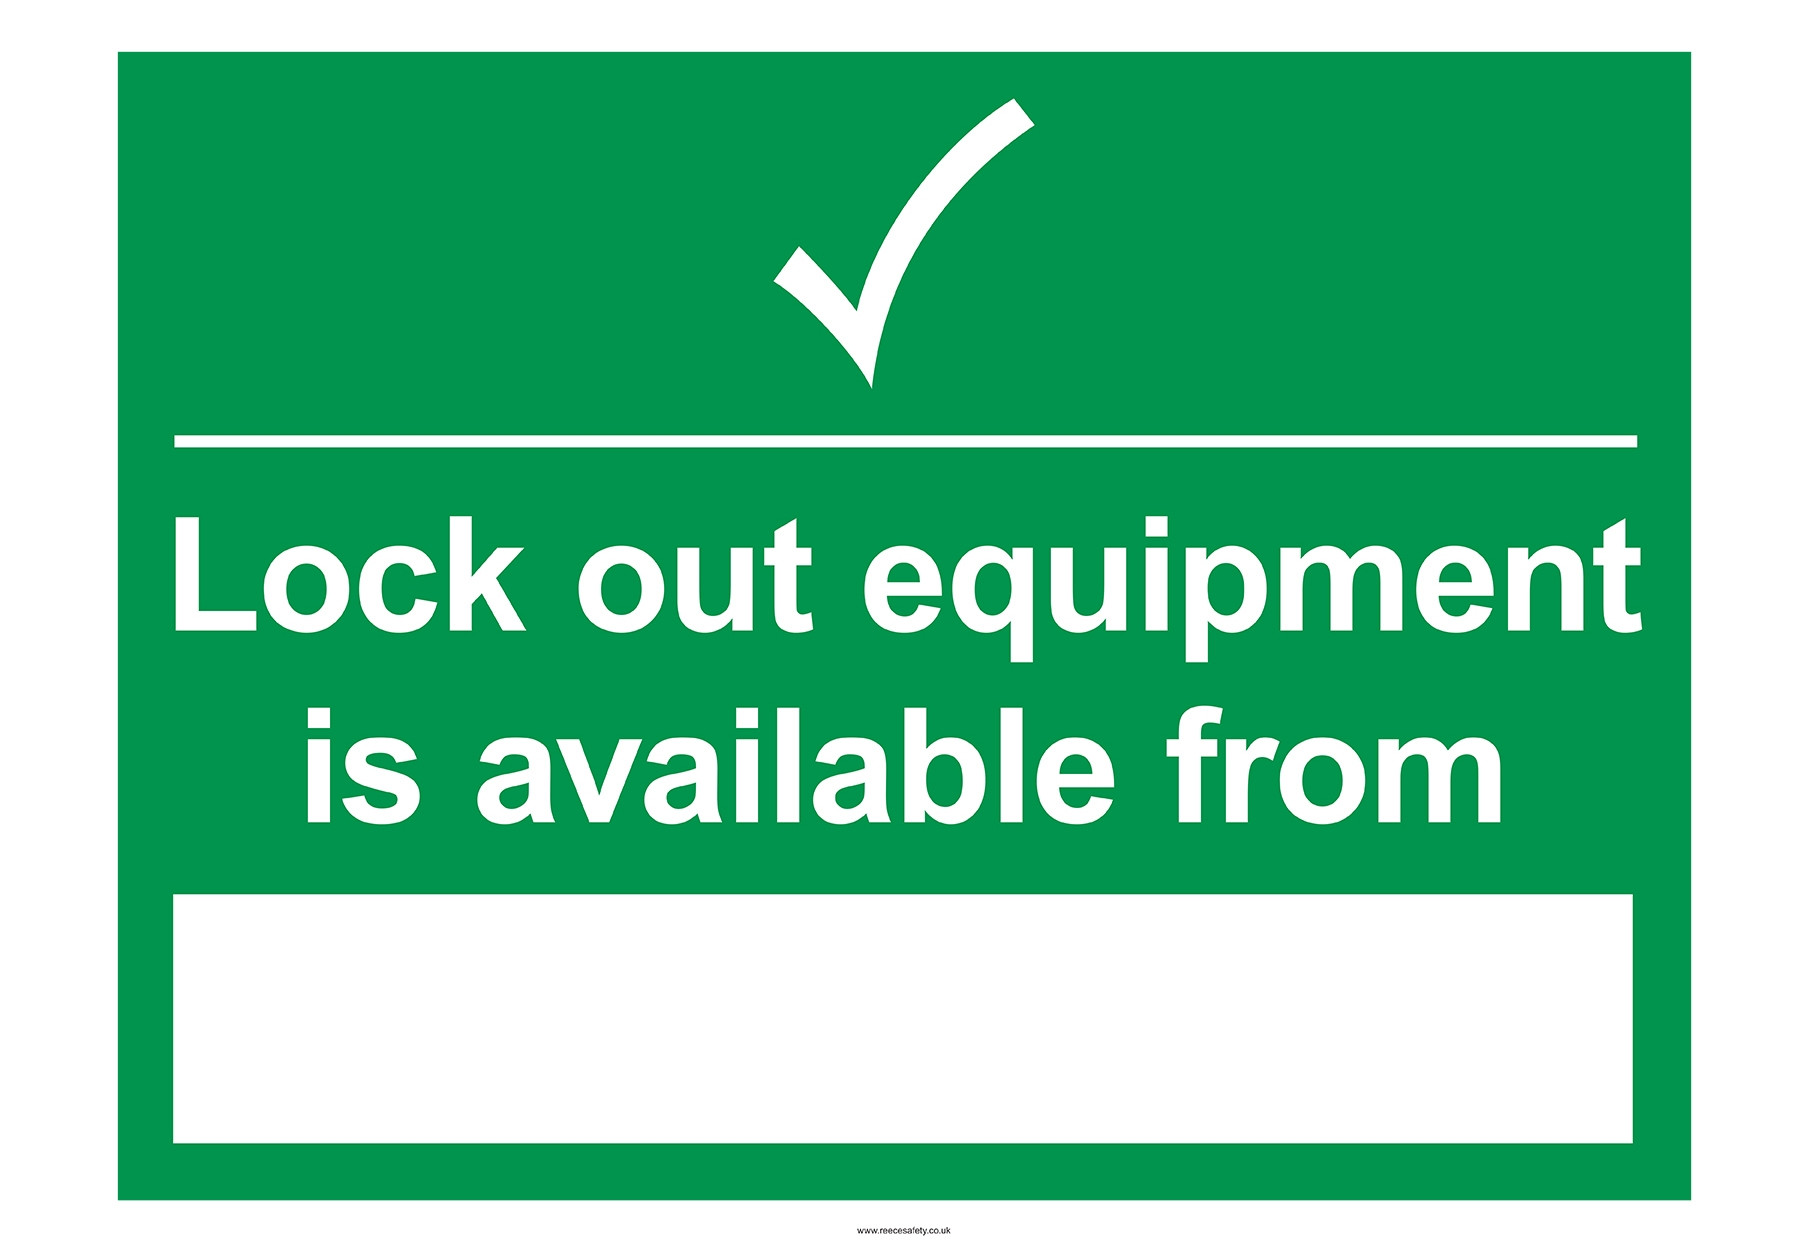 Rigid Lockout Wall Sign 450x600mm Lockout equipment is avail